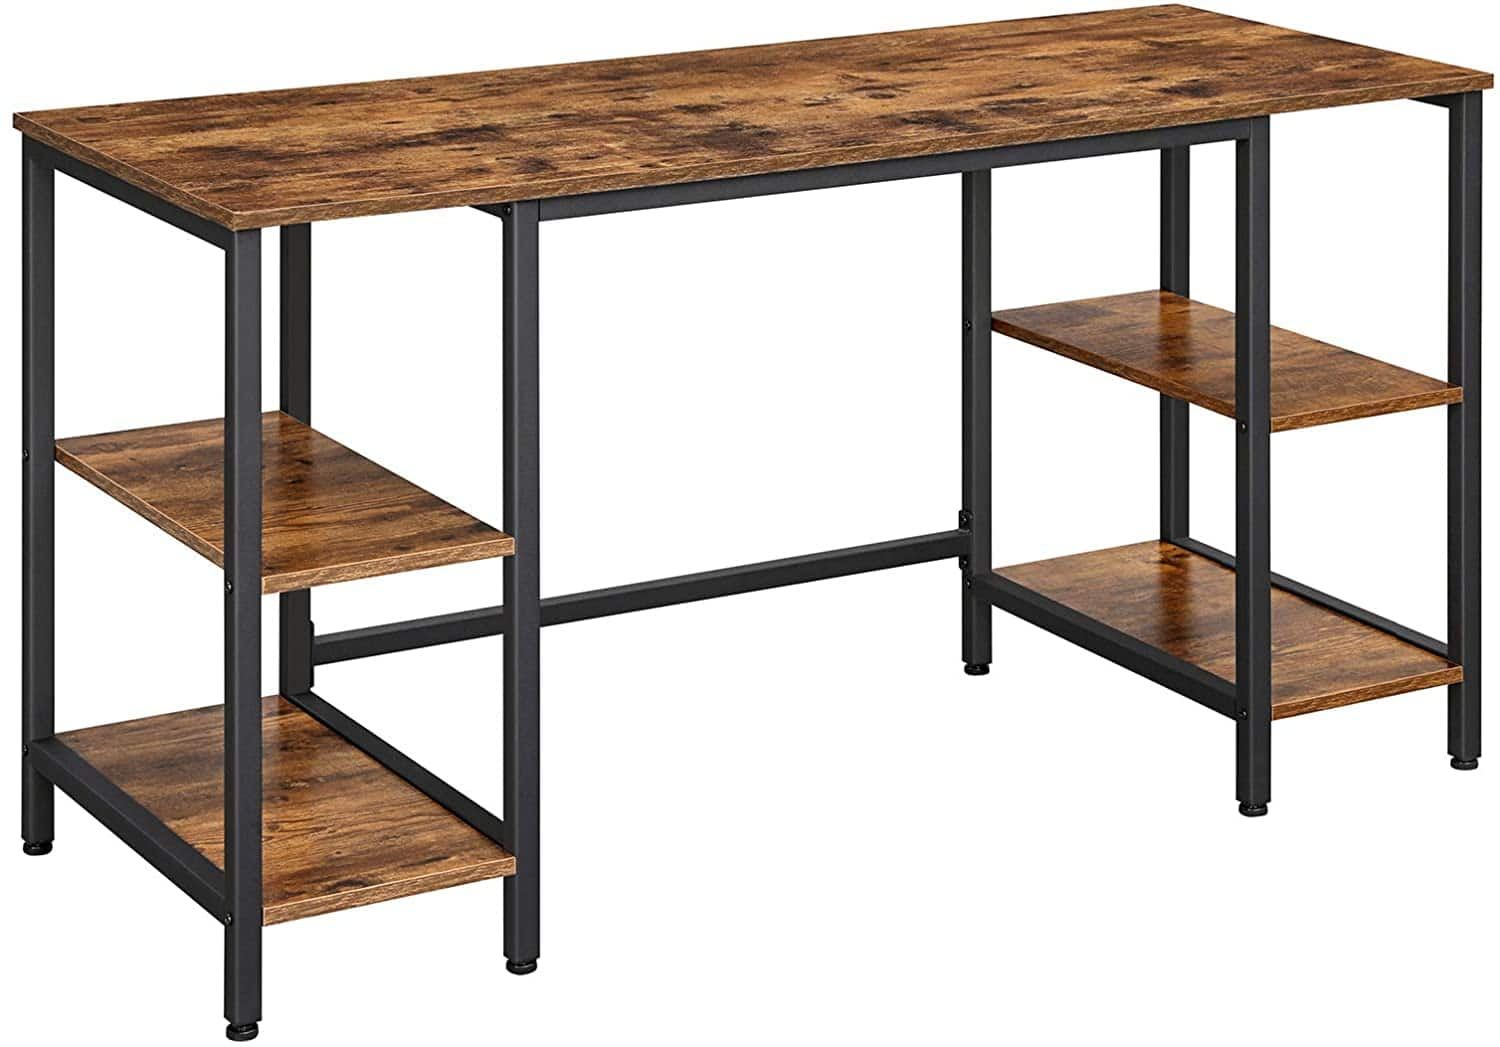 VASAGLE 58'' L-Shaped Desk for $53.99, 54'' Computer Desk with 4 Shelves $95.99, L-Shaped Computer Desk with 4 Shelves for $99.99 + Free Shipping